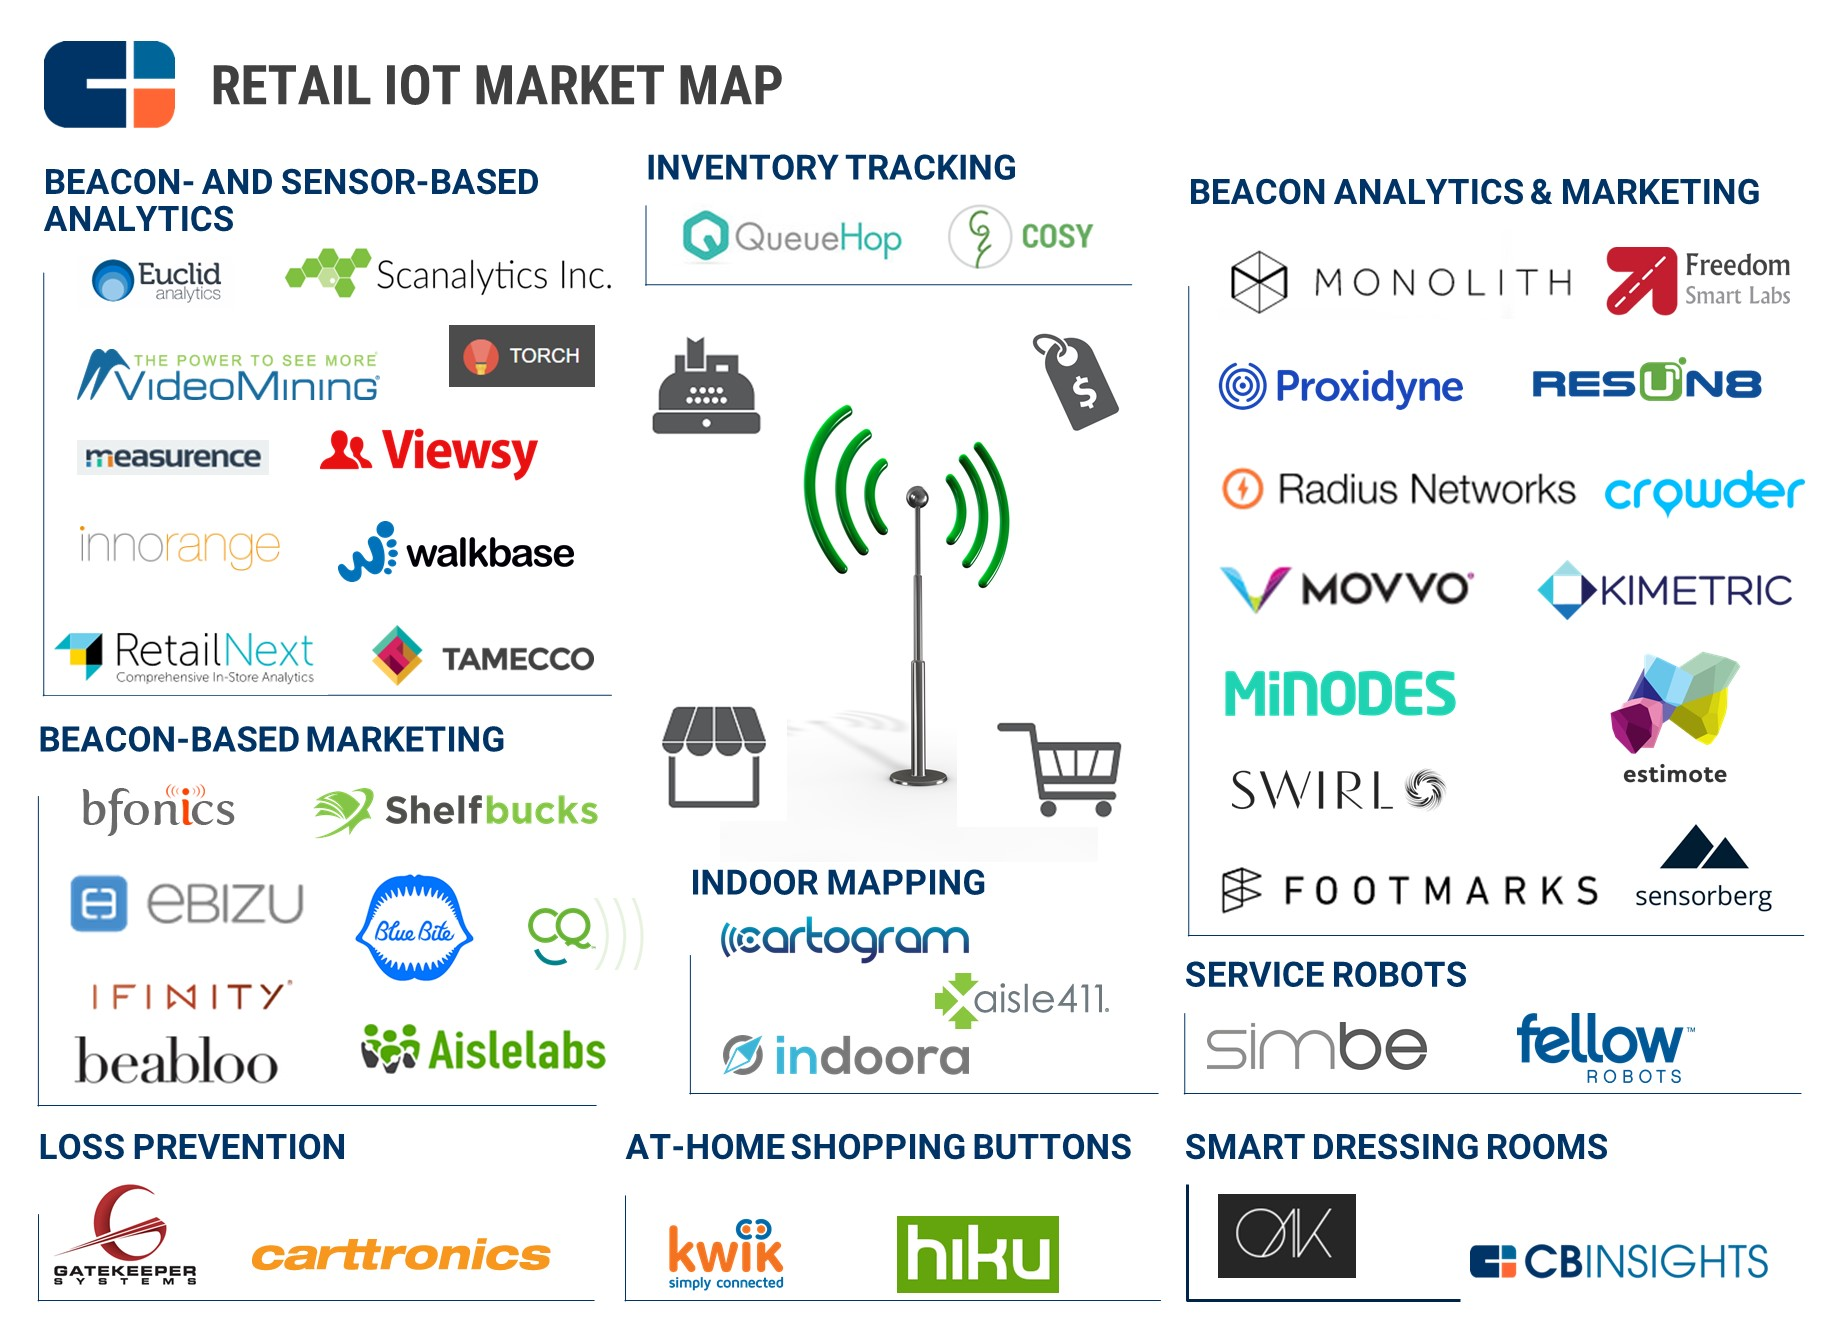 The Iot In Retail Market Map The Beacons Sensors And